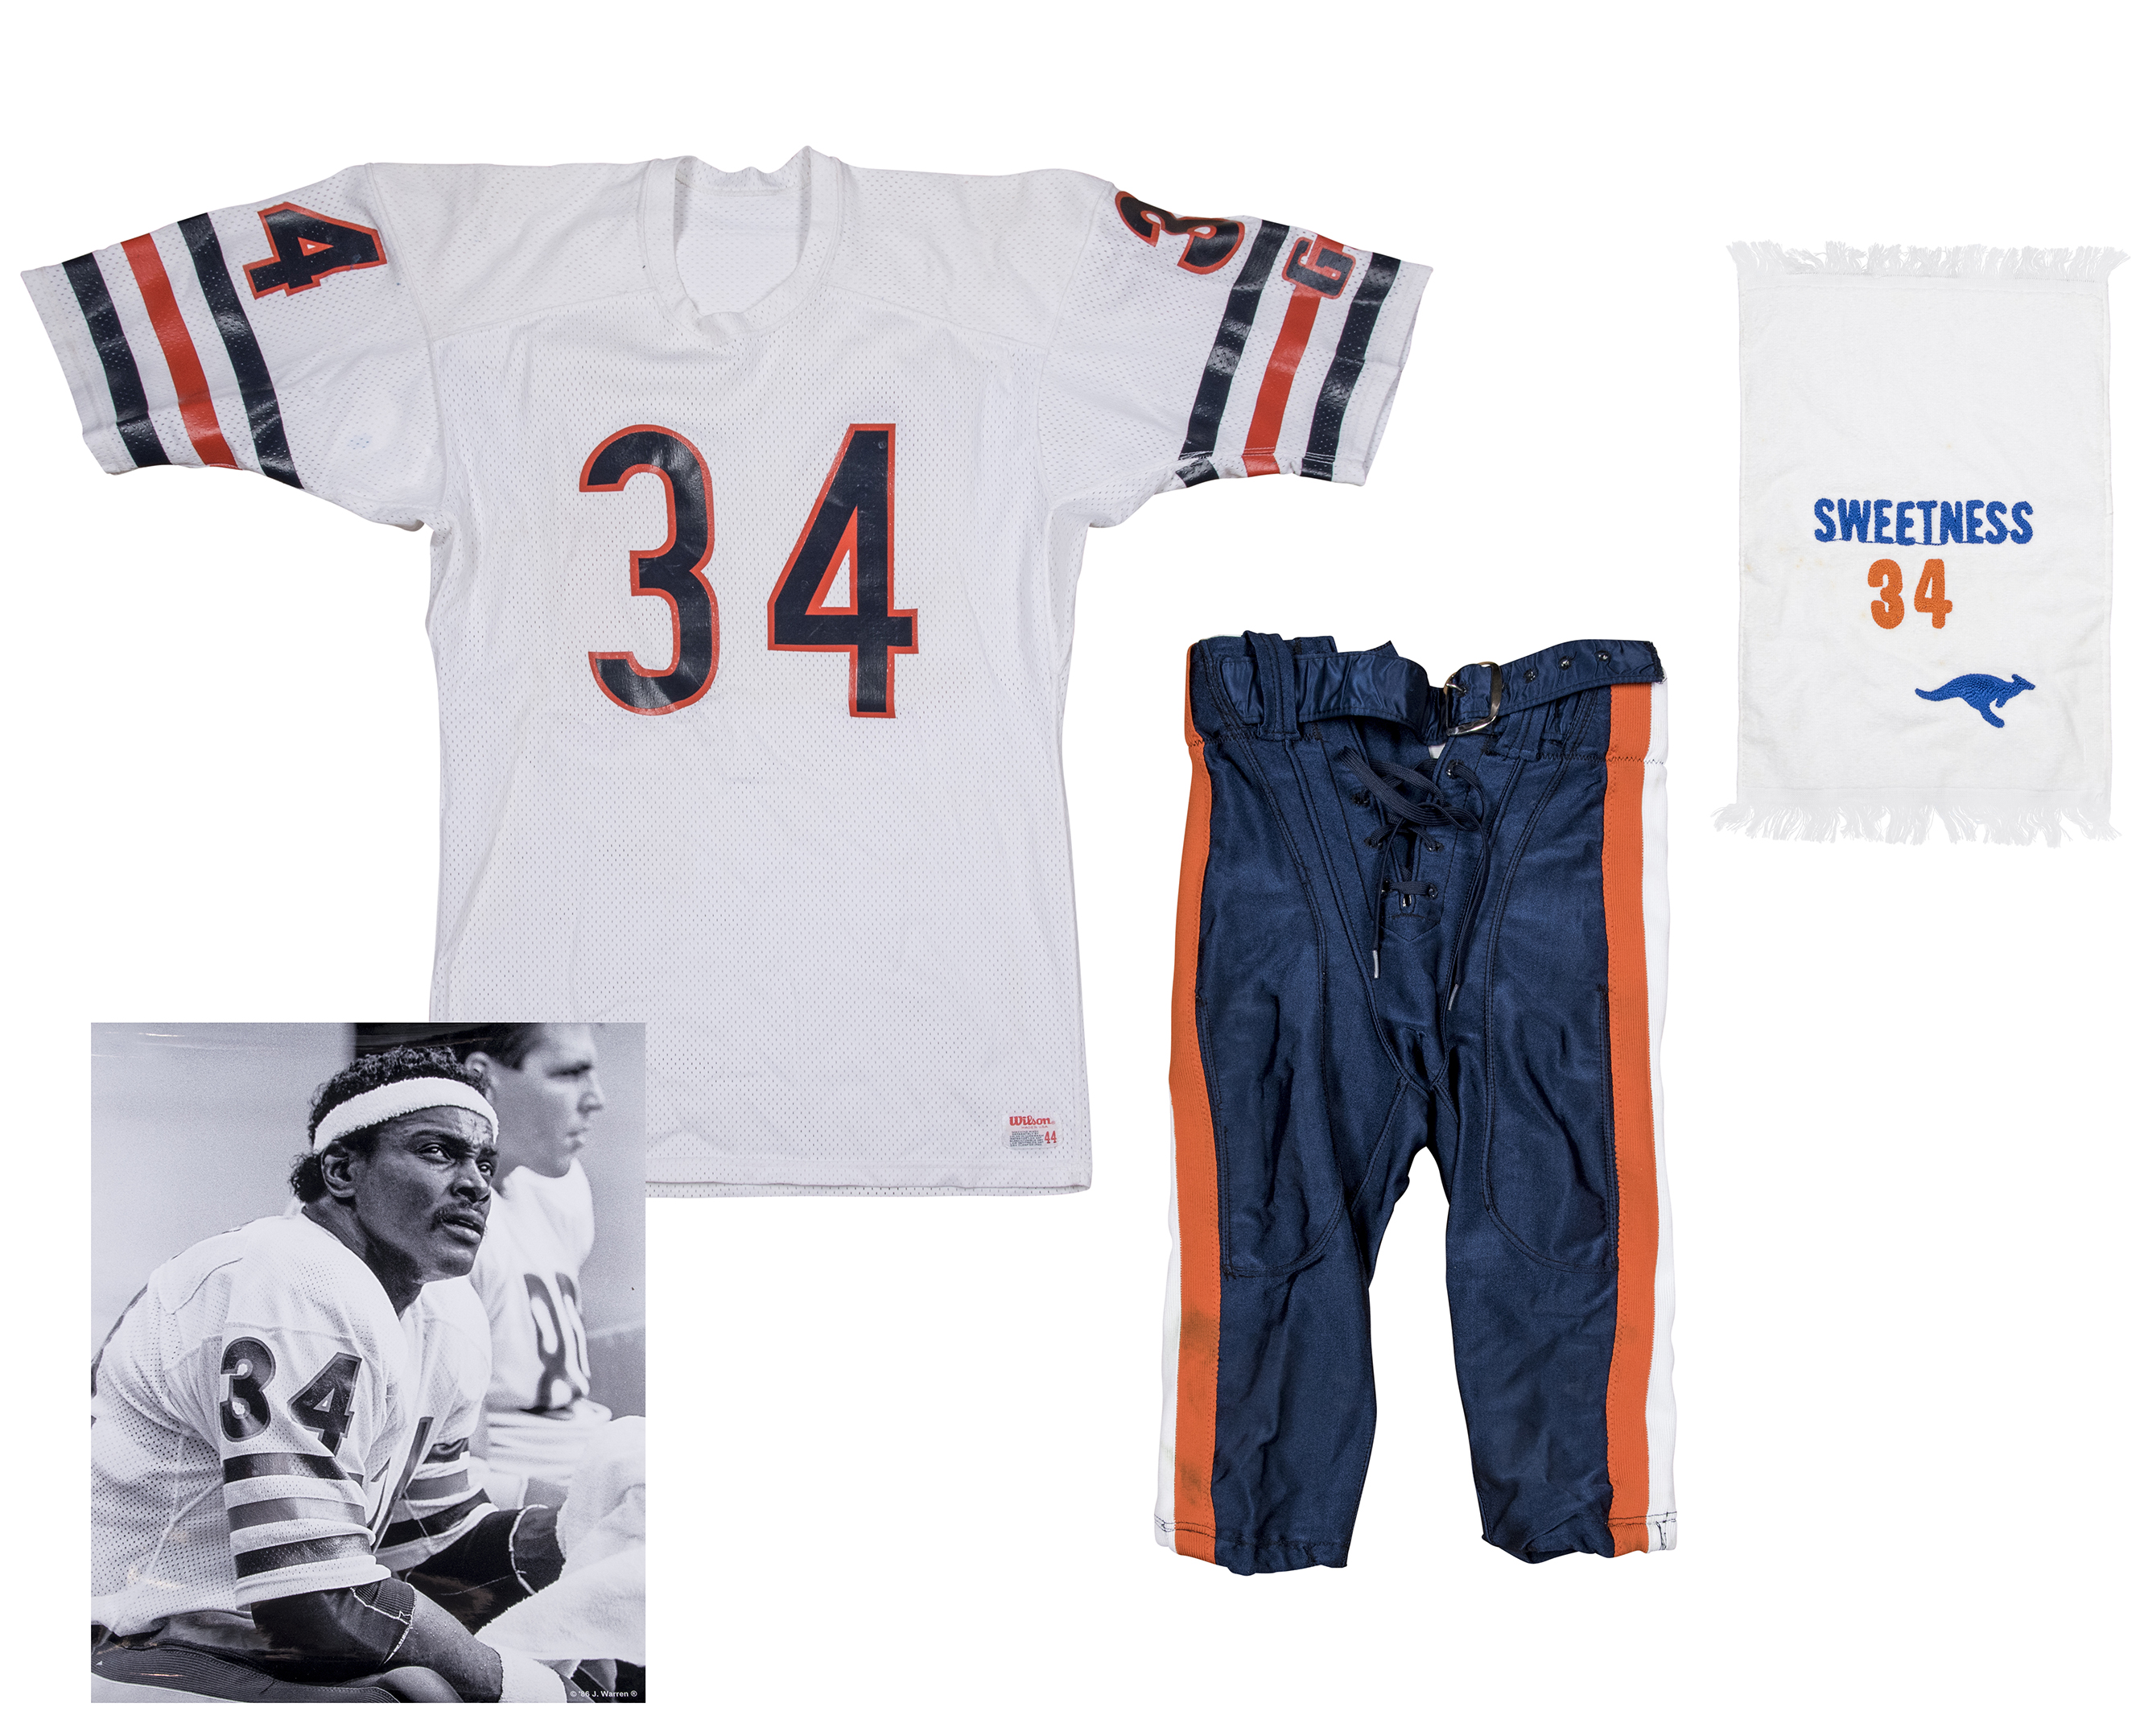 56e679c296d 1984-87 Walter Payton Game Used Chicago Bears Road Uniform - Jersey, Pants  and